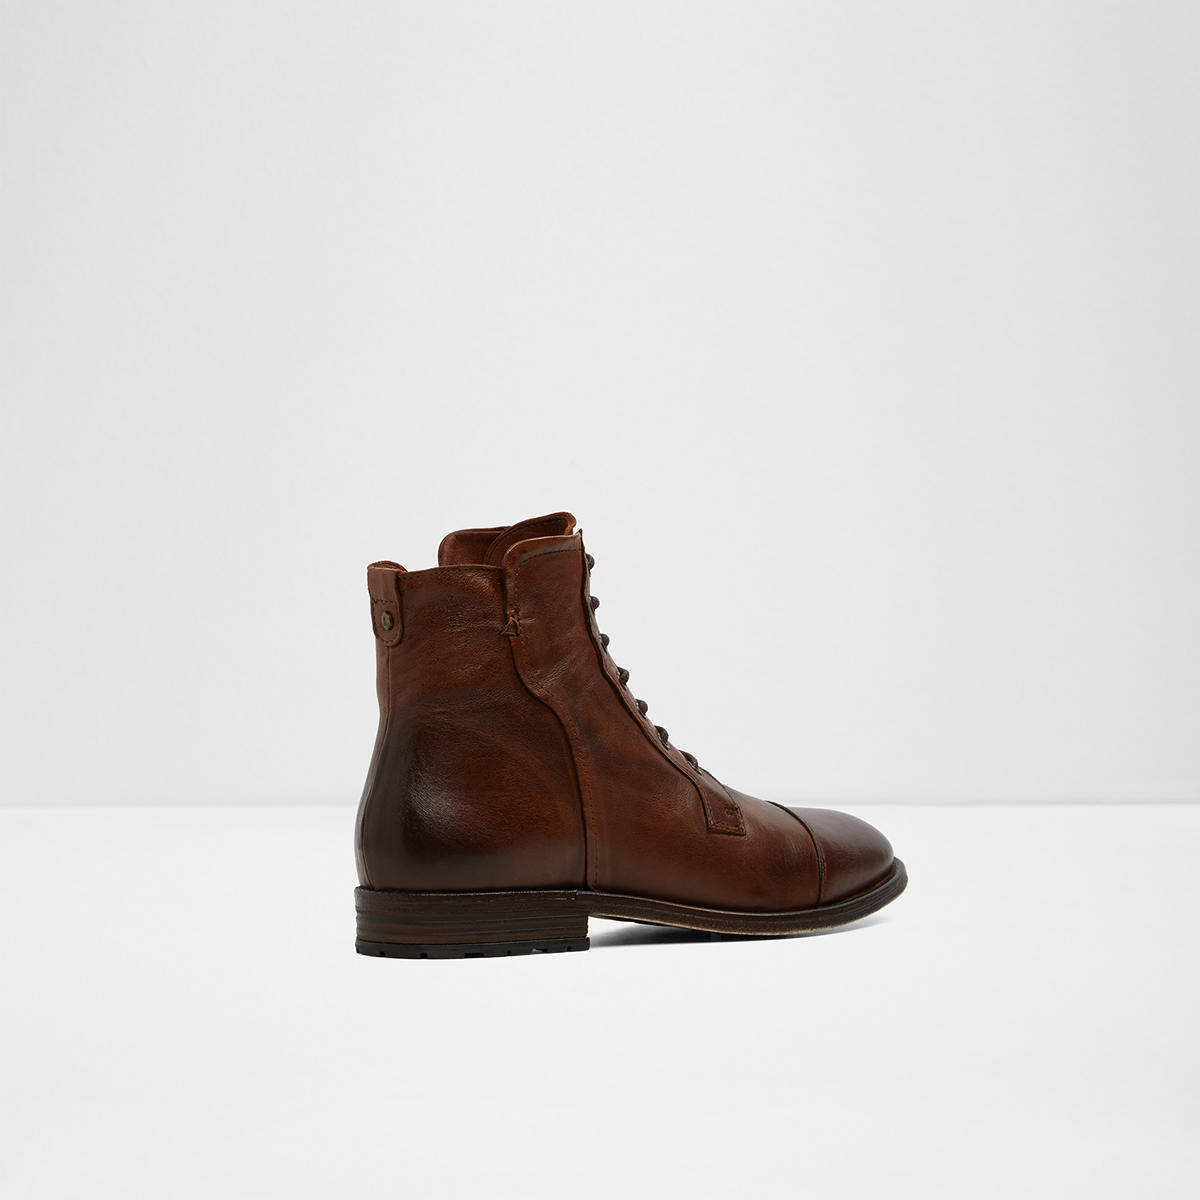 Watch - Shoes aldo for men boots video